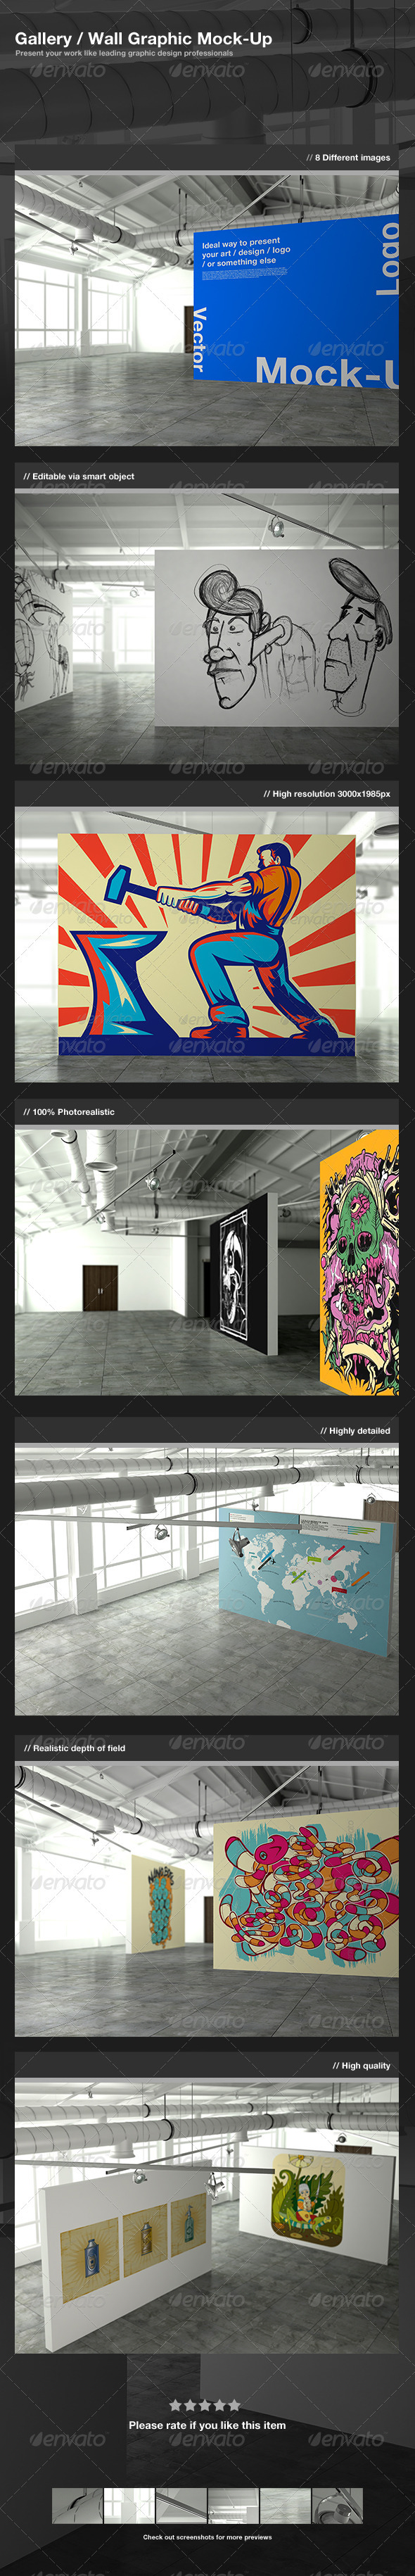 Gallery / Wall Graphic Mock-Up - Miscellaneous Displays